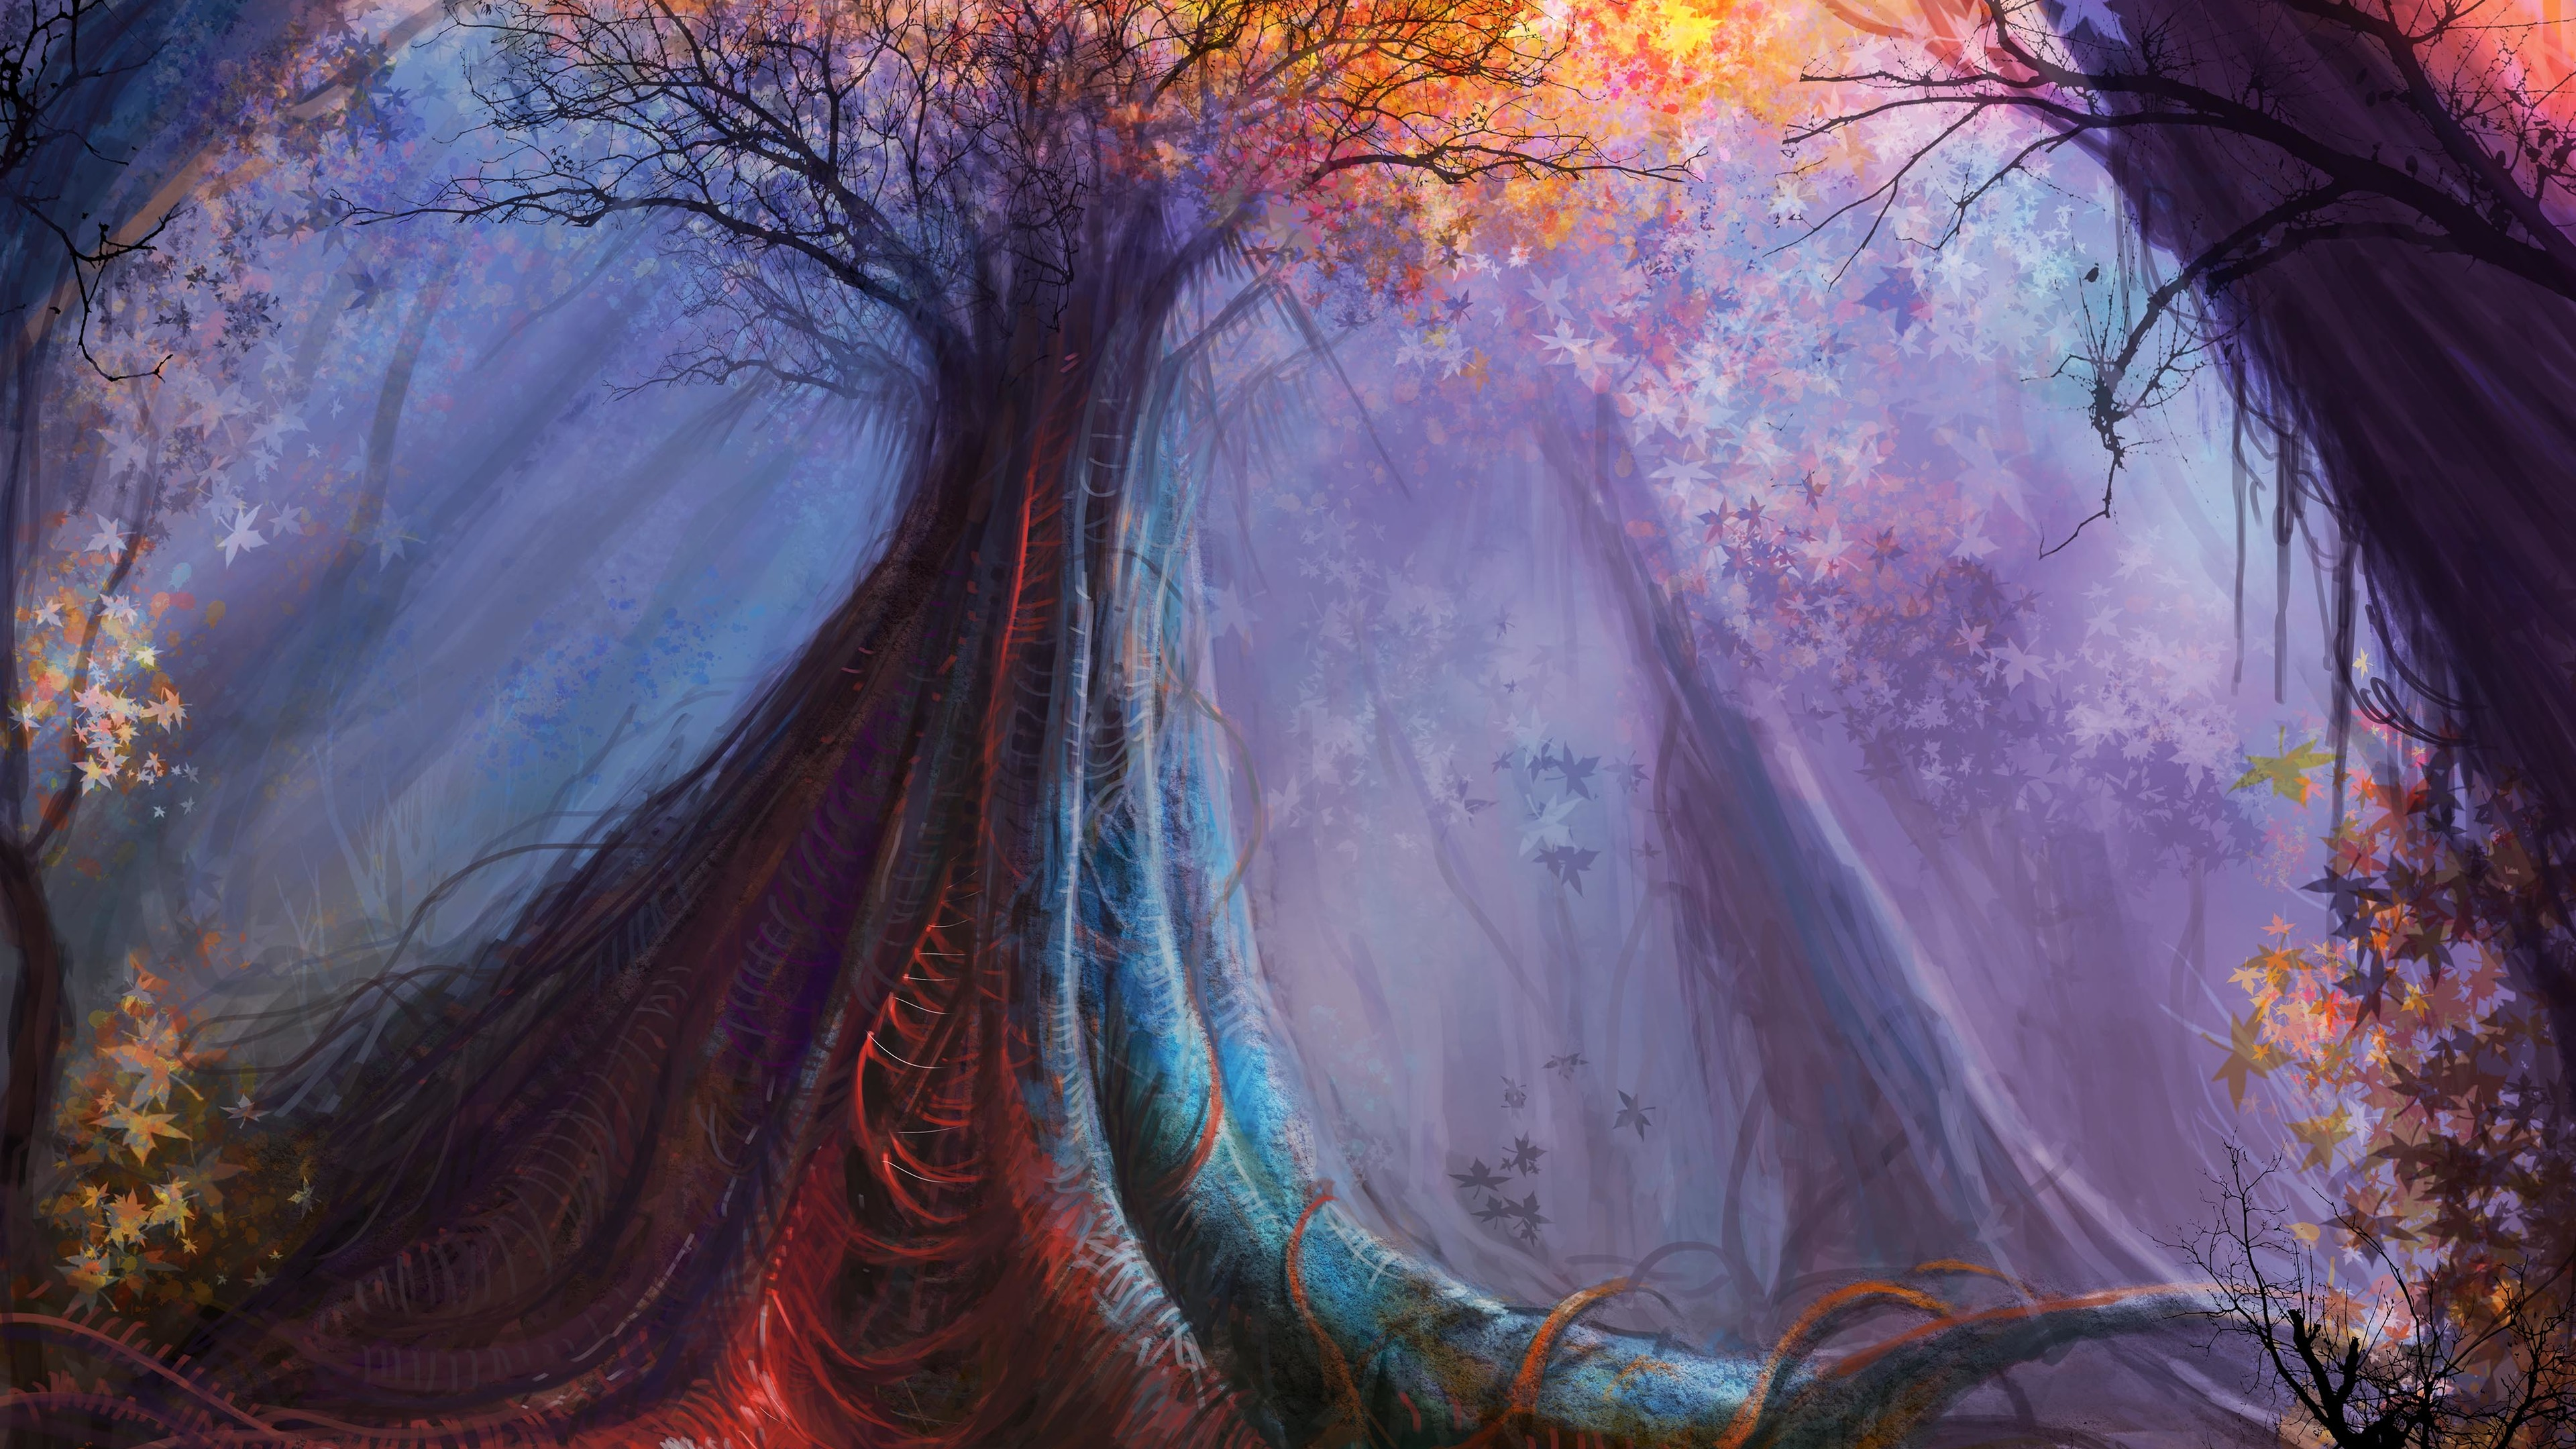 magic tree painting 4k 1540754436 - Magic Tree Painting 4k - tree wallpapers, painting wallpapers, hd-wallpapers, digital art wallpapers, deviantart wallpapers, artwork wallpapers, artist wallpapers, 4k-wallpapers